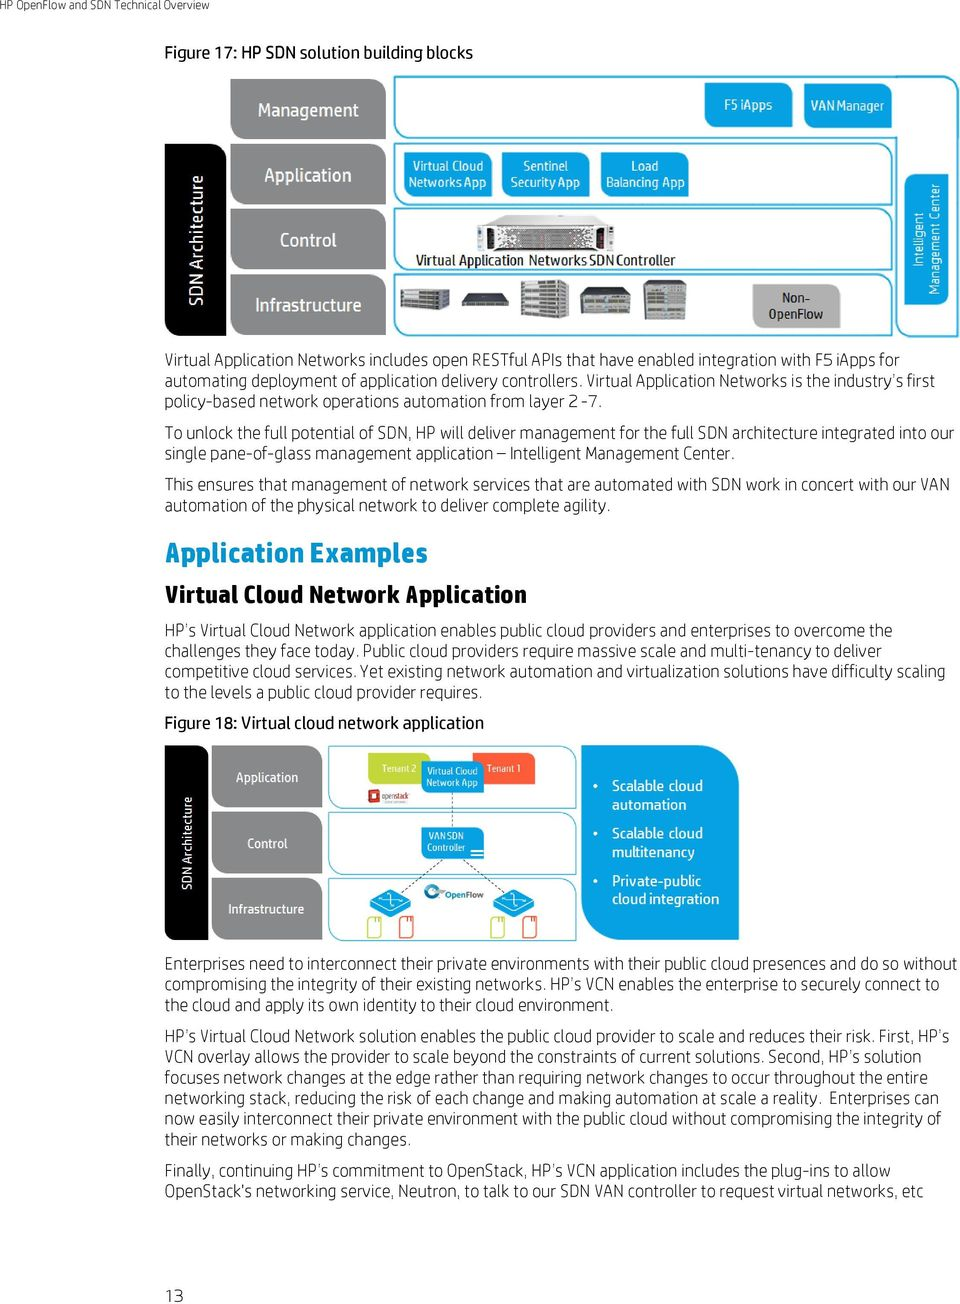 HP OpenFlow and SDN Technical Overview - PDF